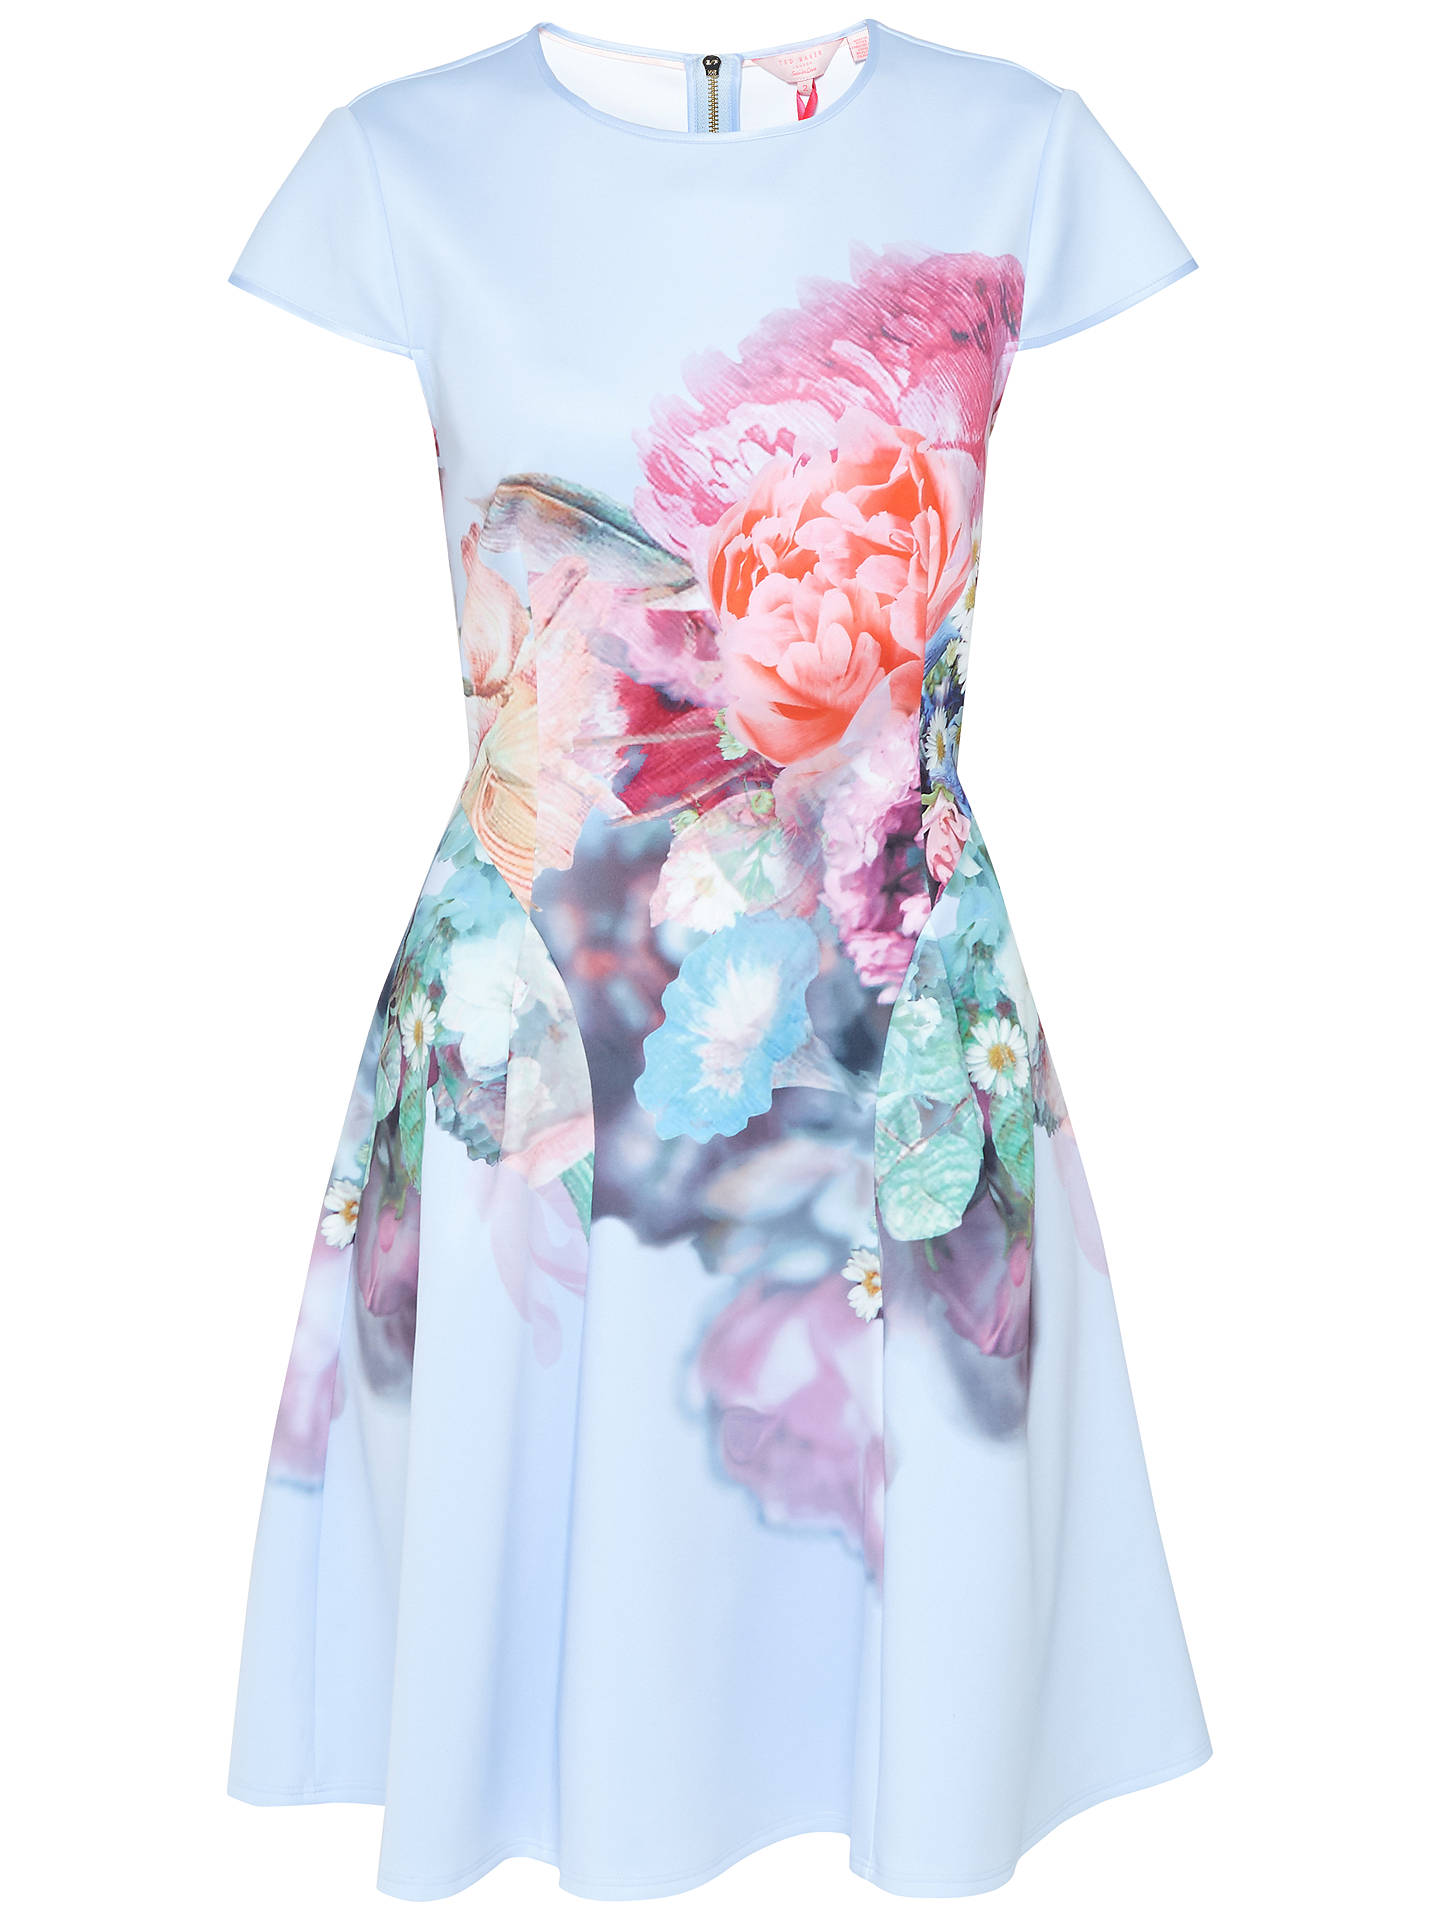 a2ff324b7fcfba BuyTed Baker Bowkay Focus Bouquet Skater Dress